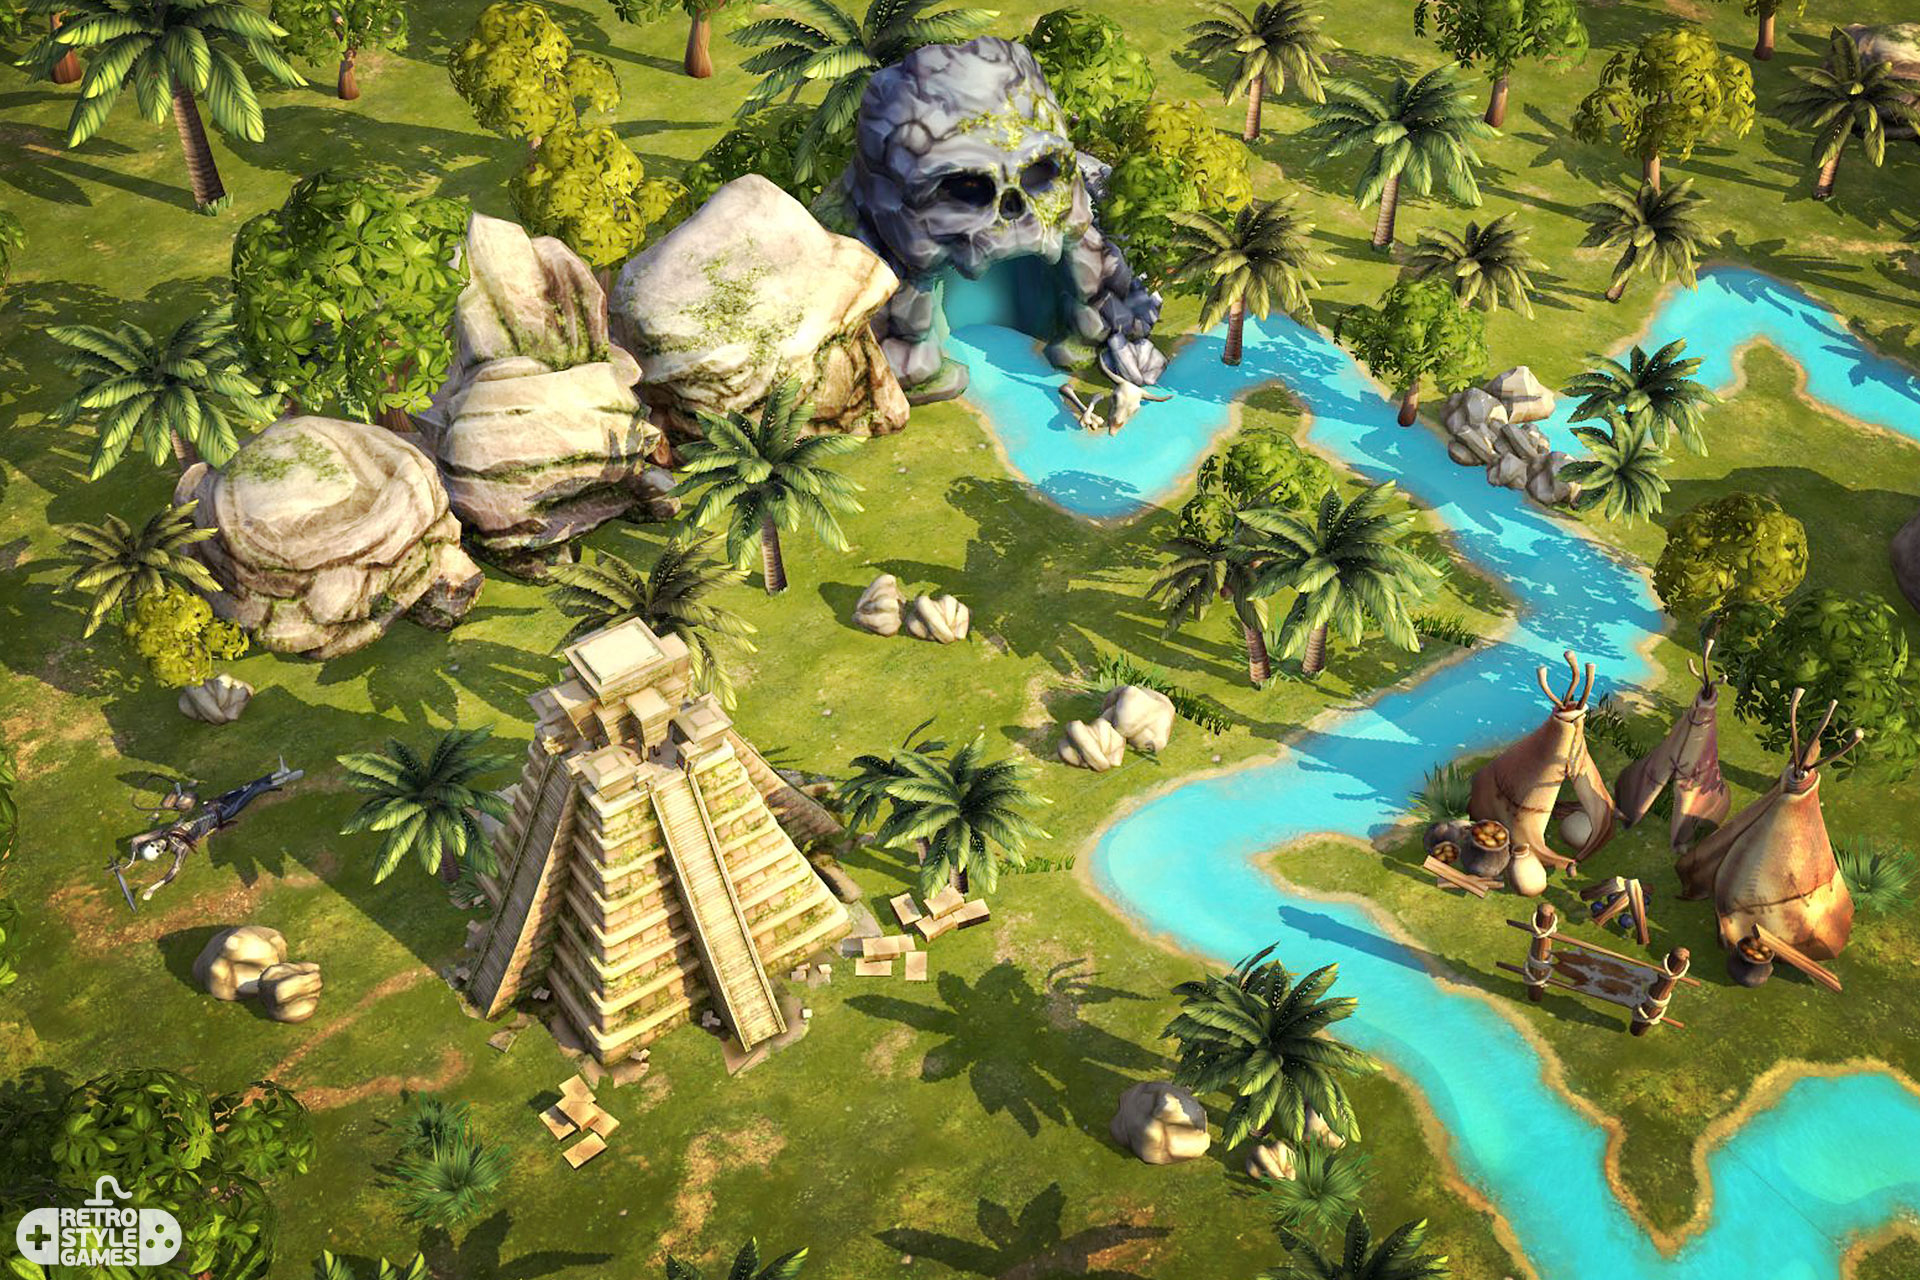 pirate island assets collection